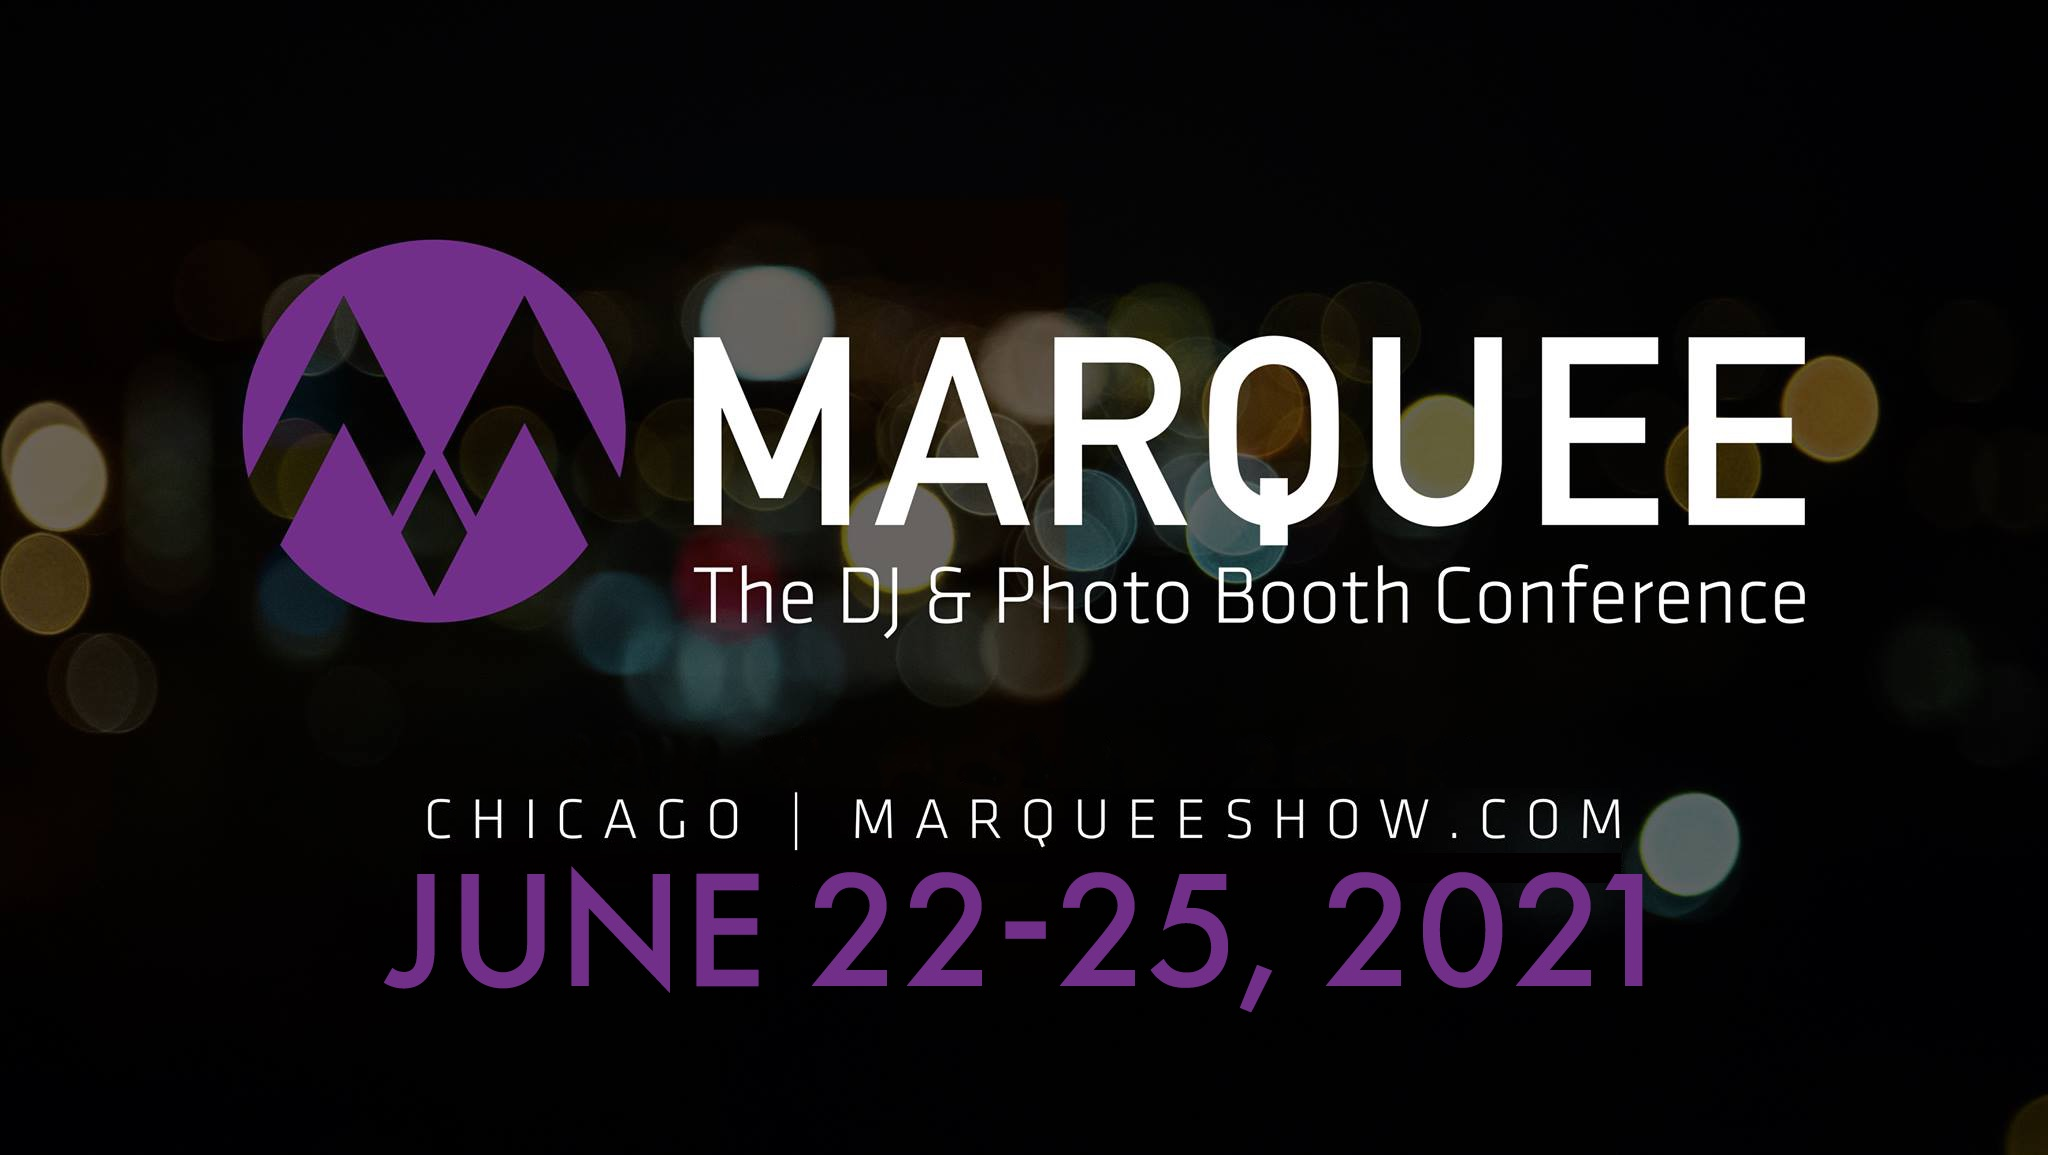 Marquee Dj and Photo Booth Conference at Hyatt Regency Deerfield